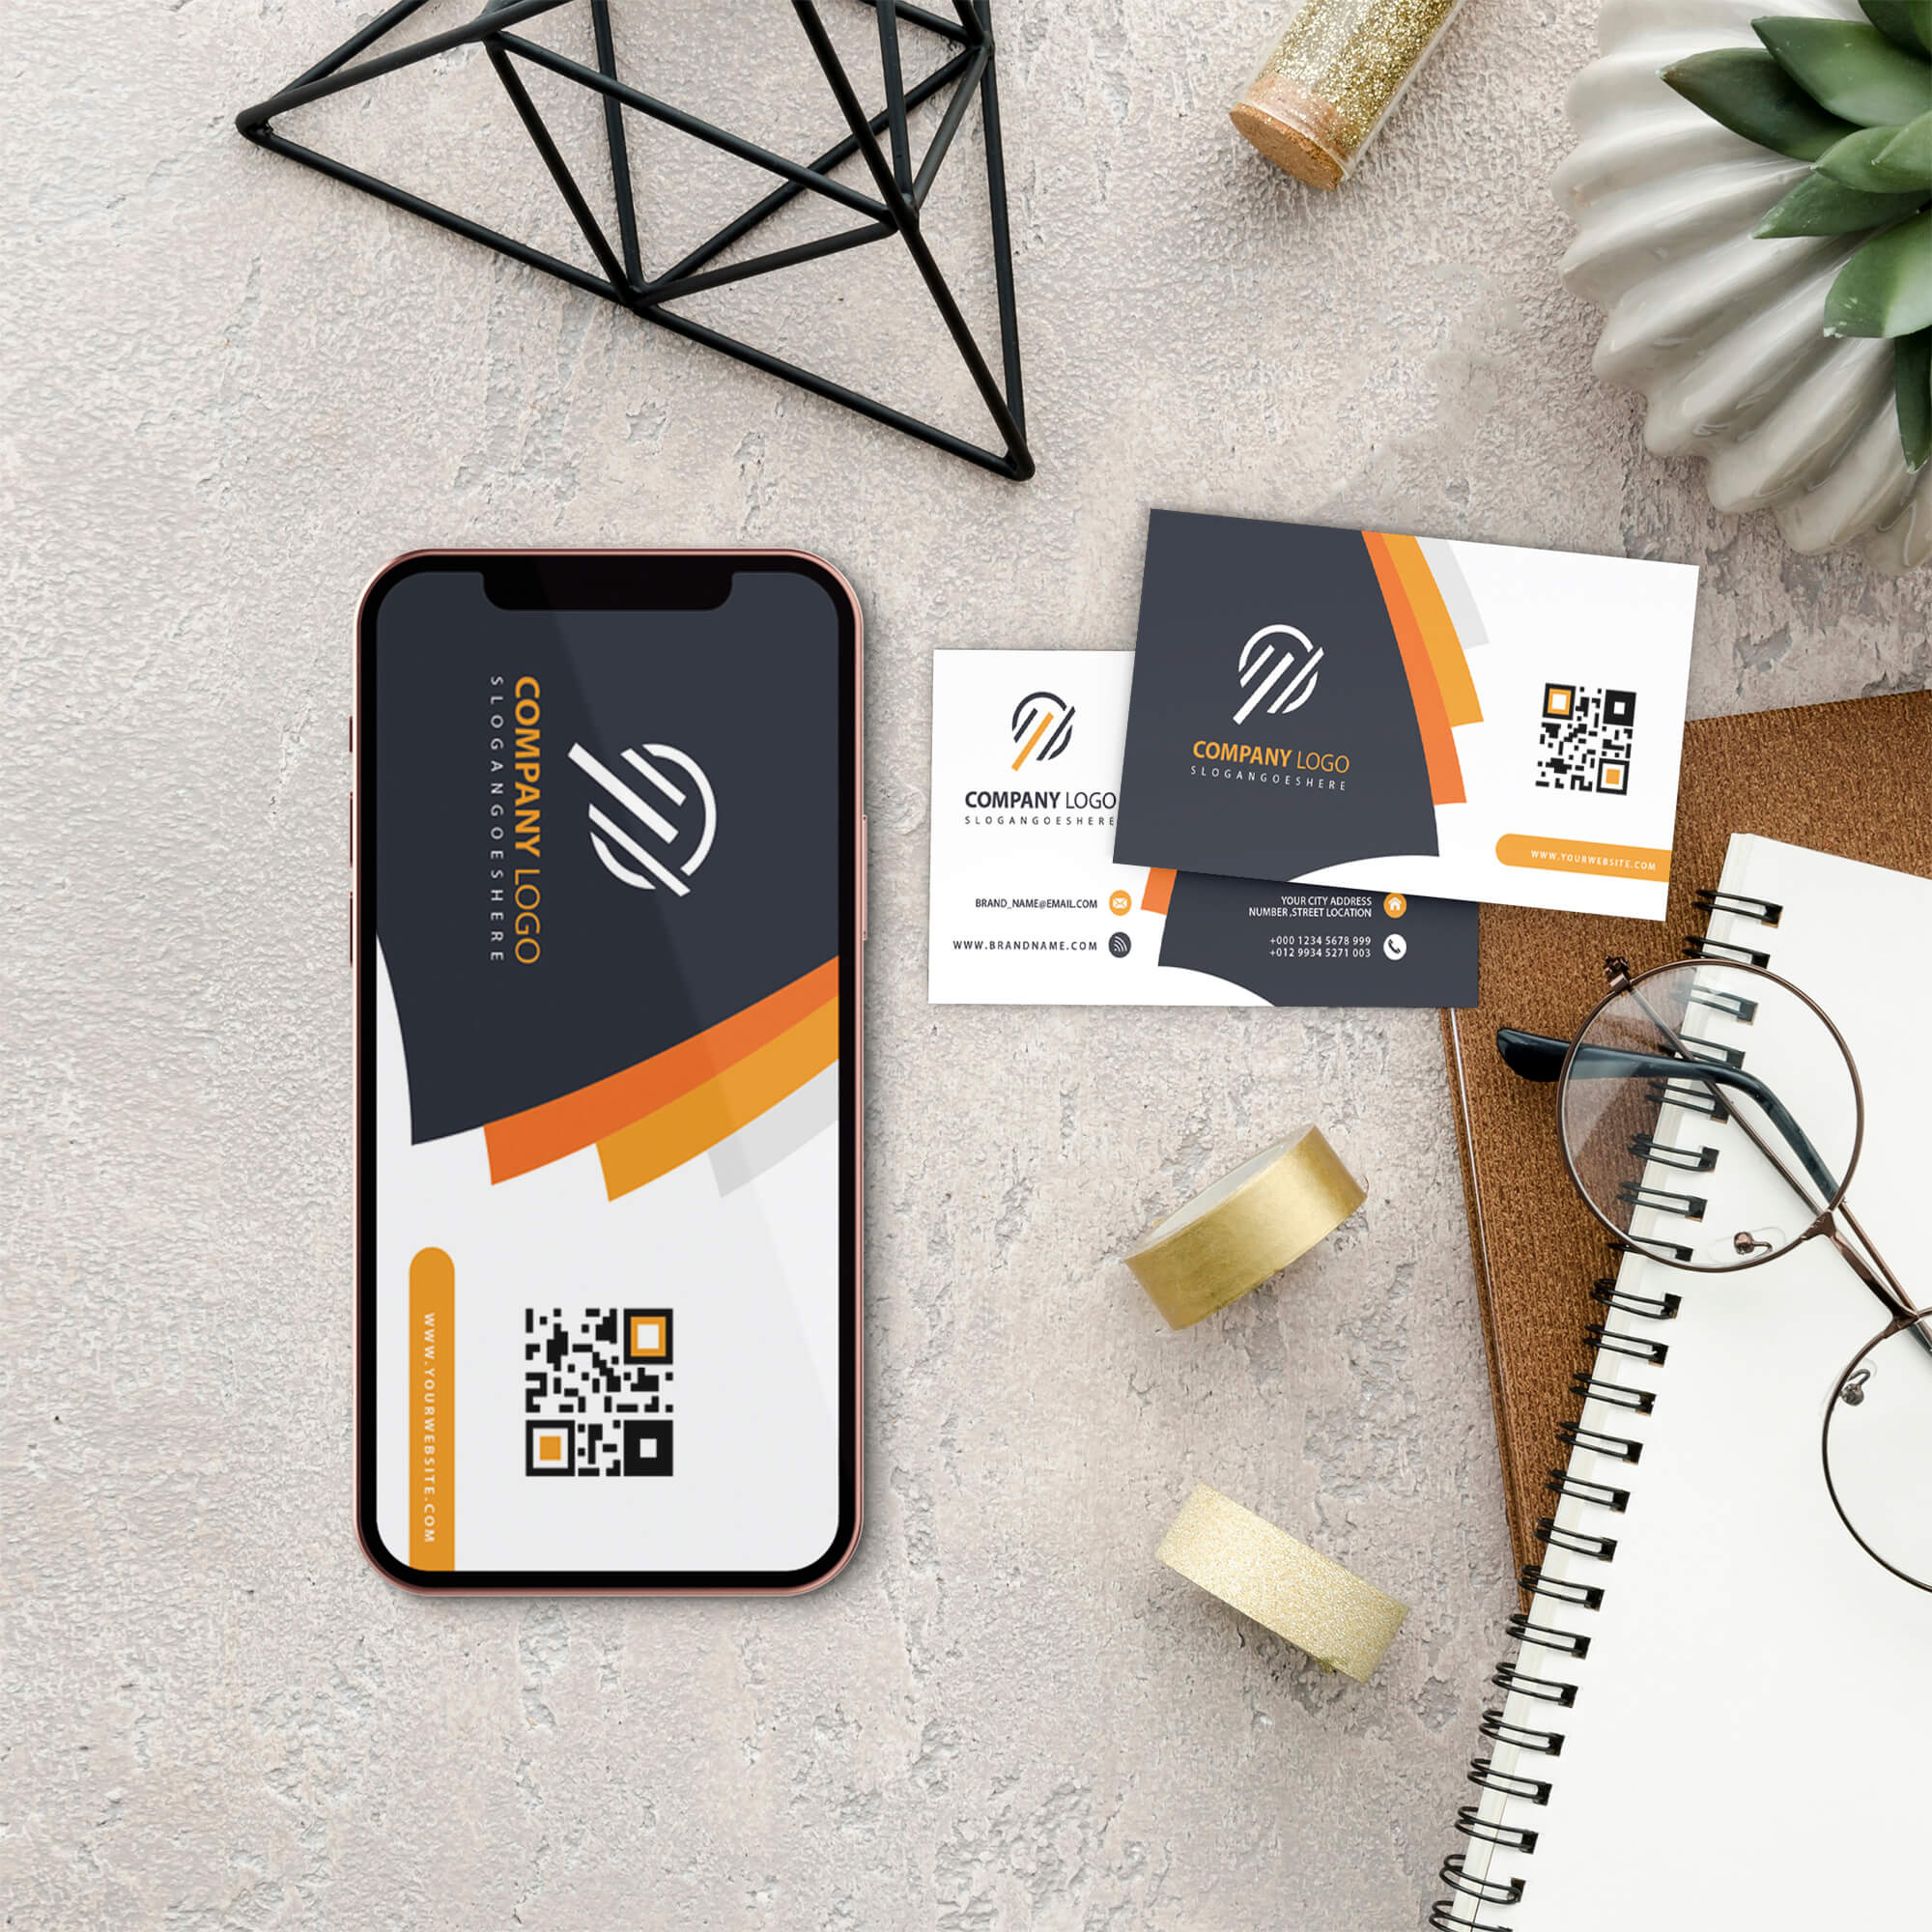 Free Card And Phone Mockup PSD Template